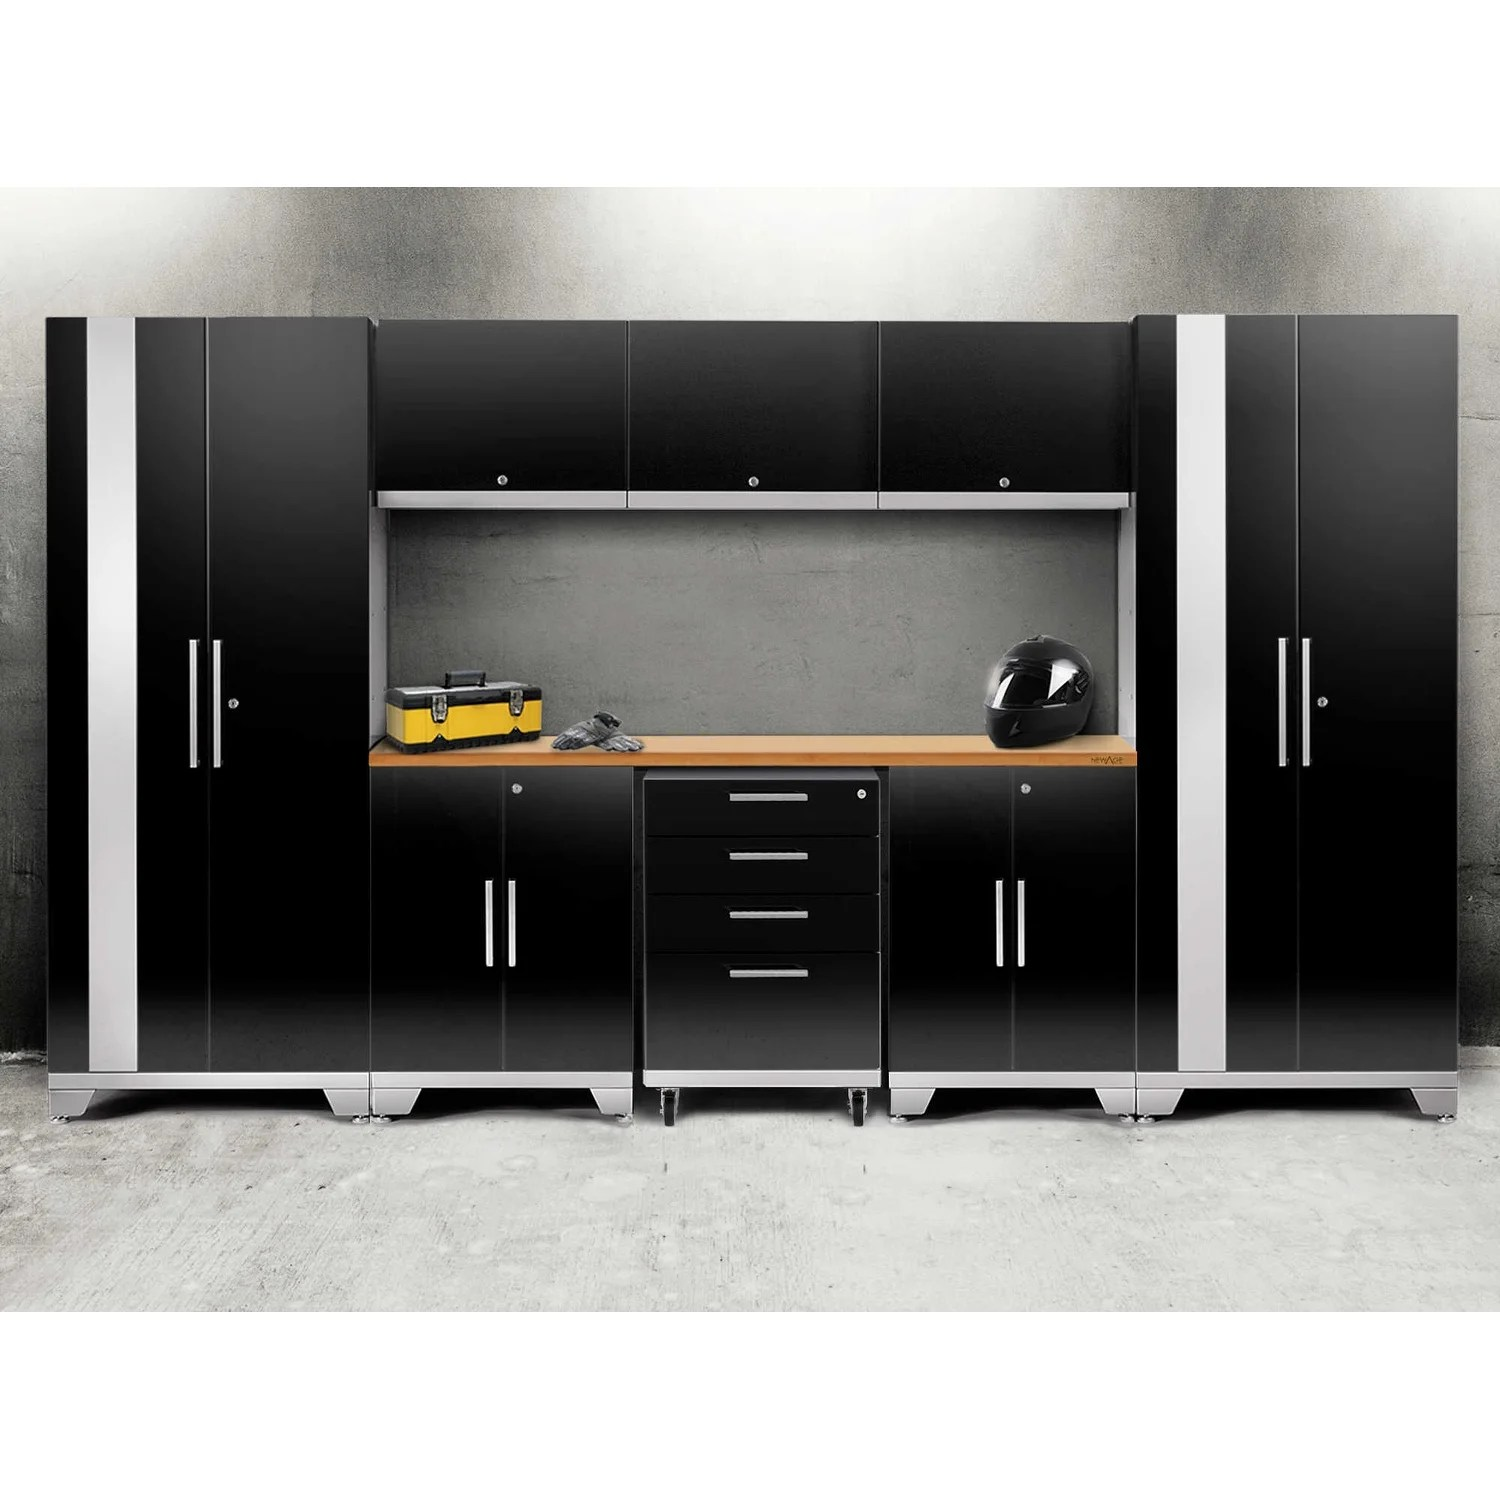 Garage Cabinets At Costco Buy Garage Storage Online At Overstock Our Best Storage